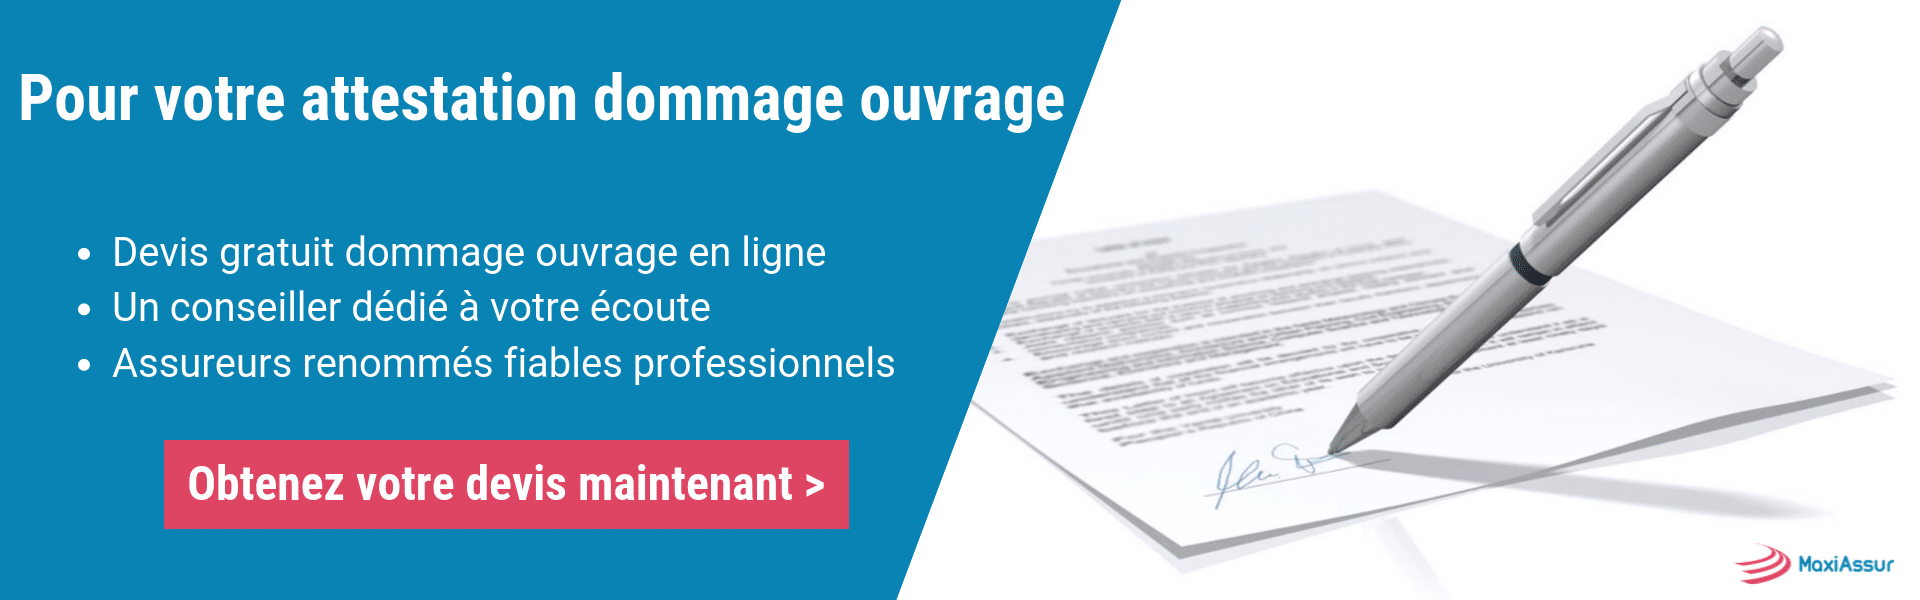 attestation dommage ouvrage